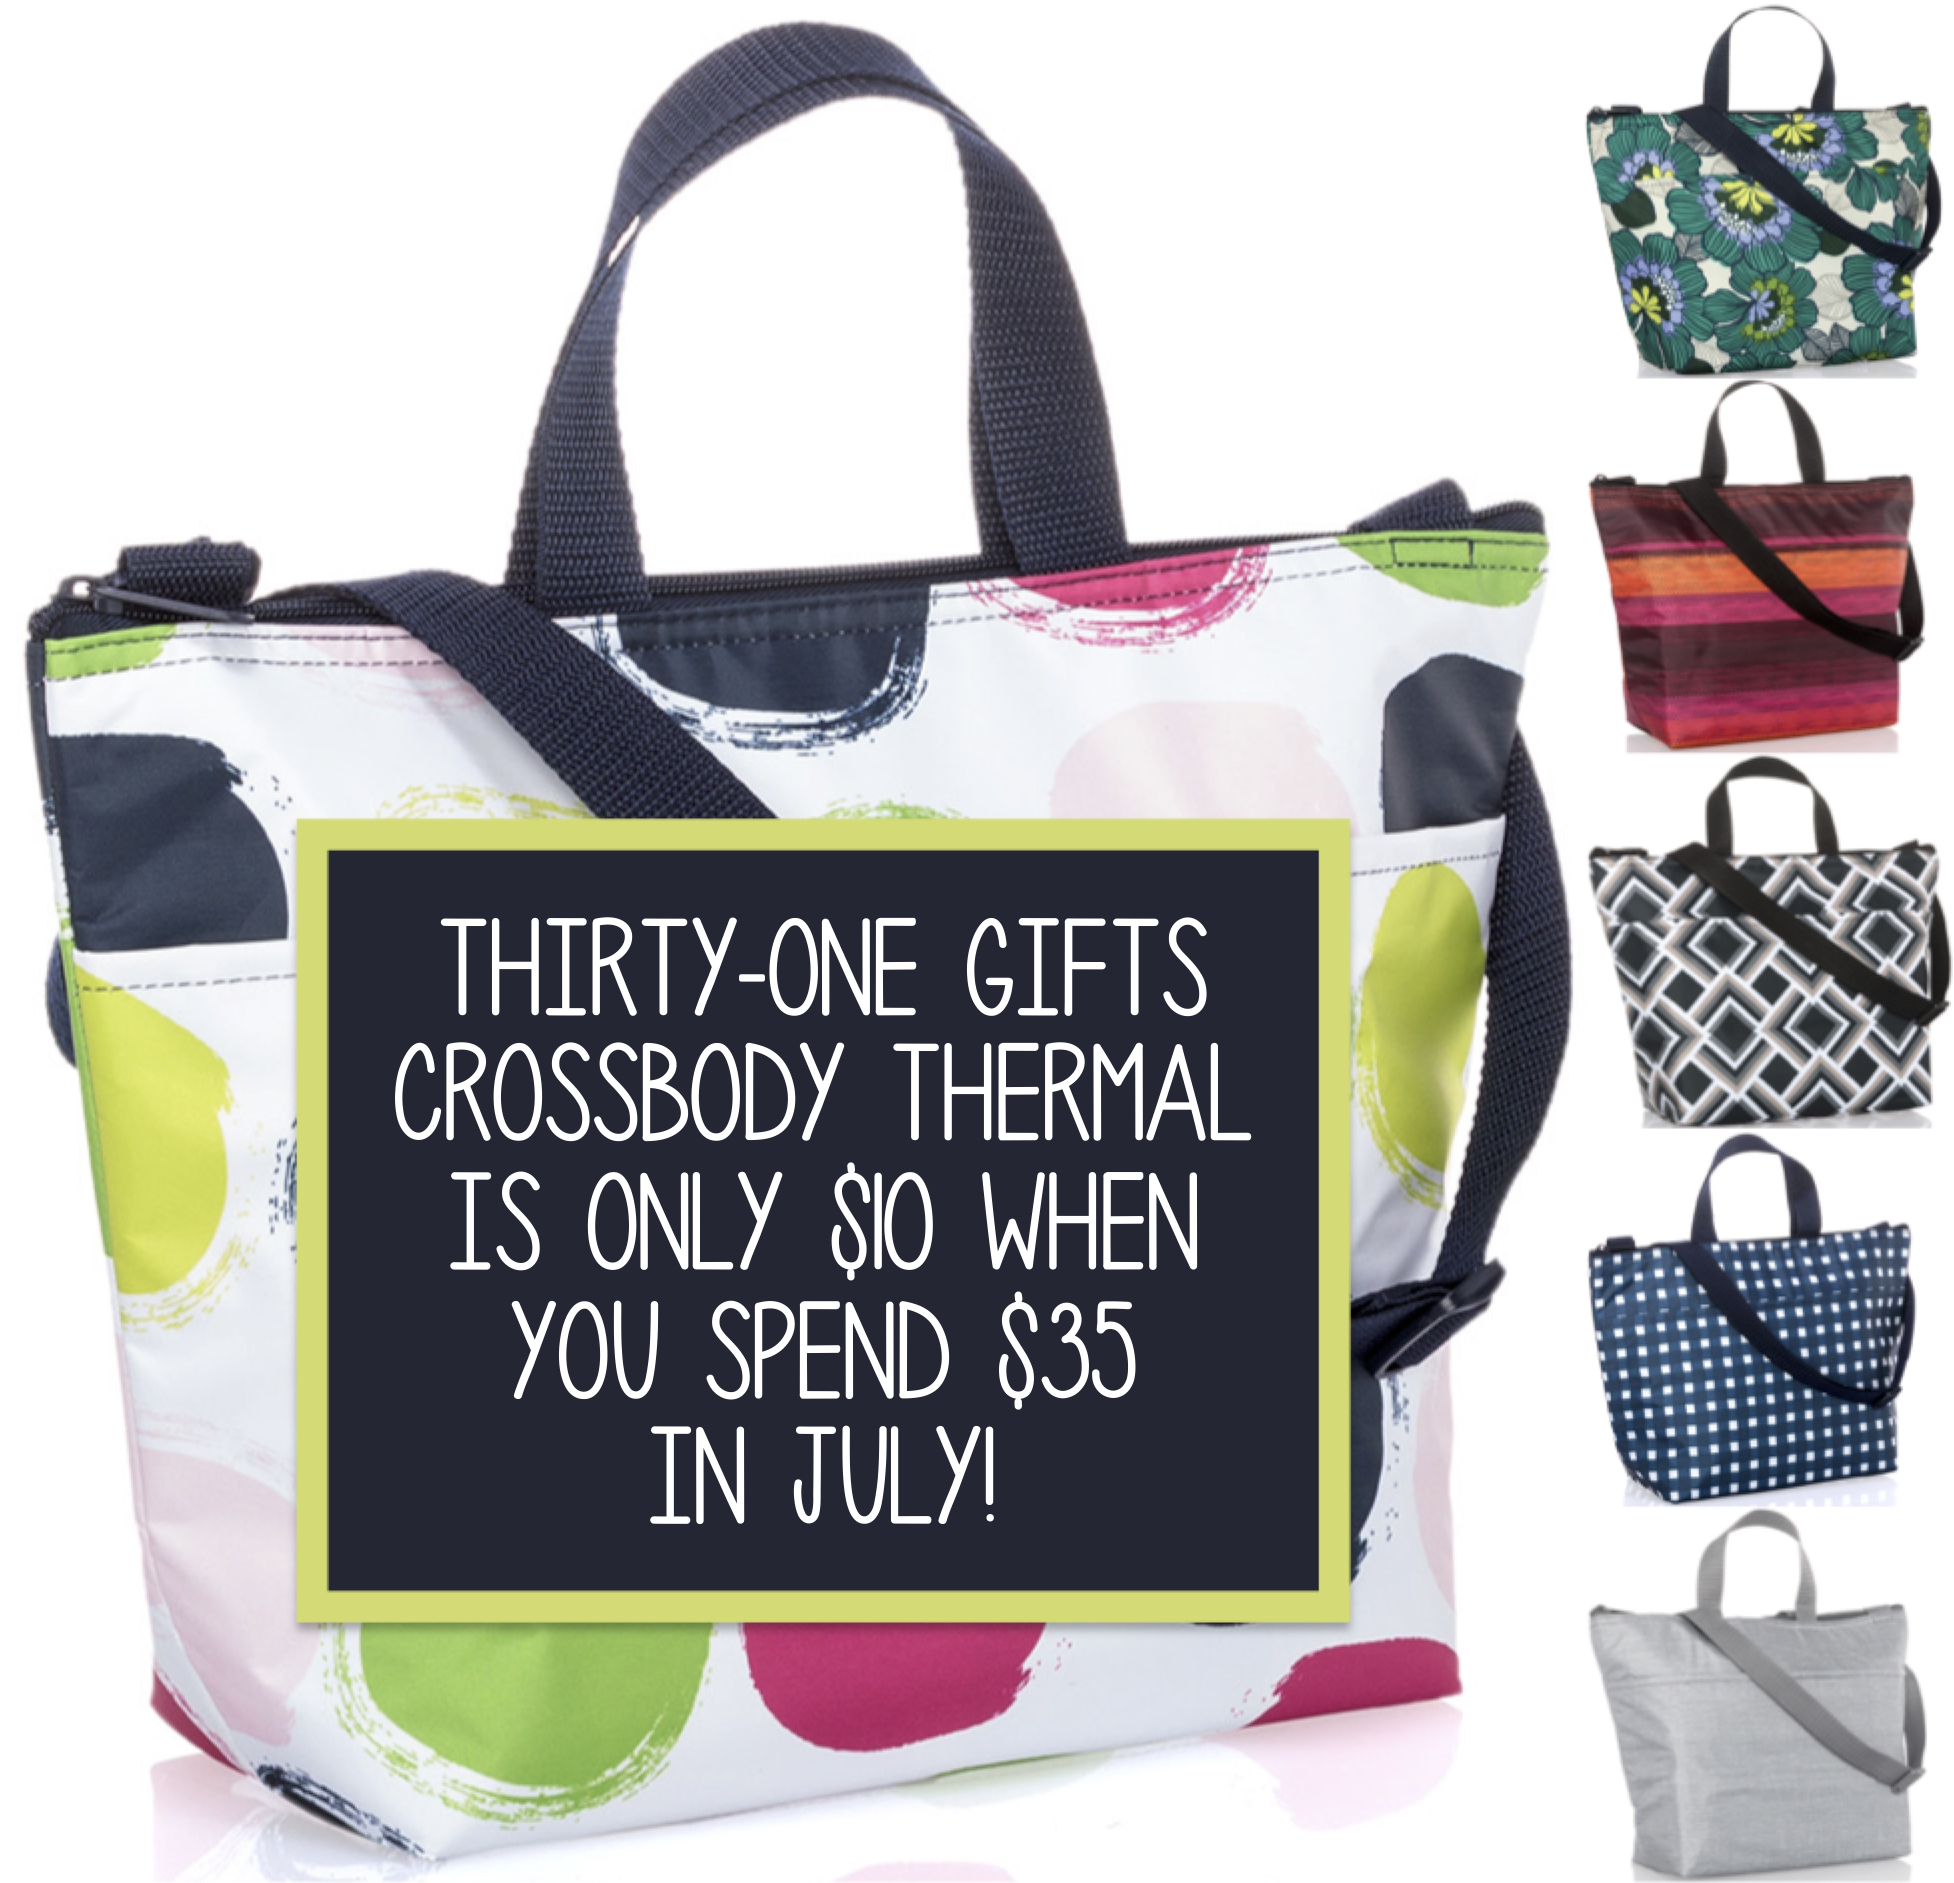 Thirty-One Gifts - Crossbody Thermal Tote